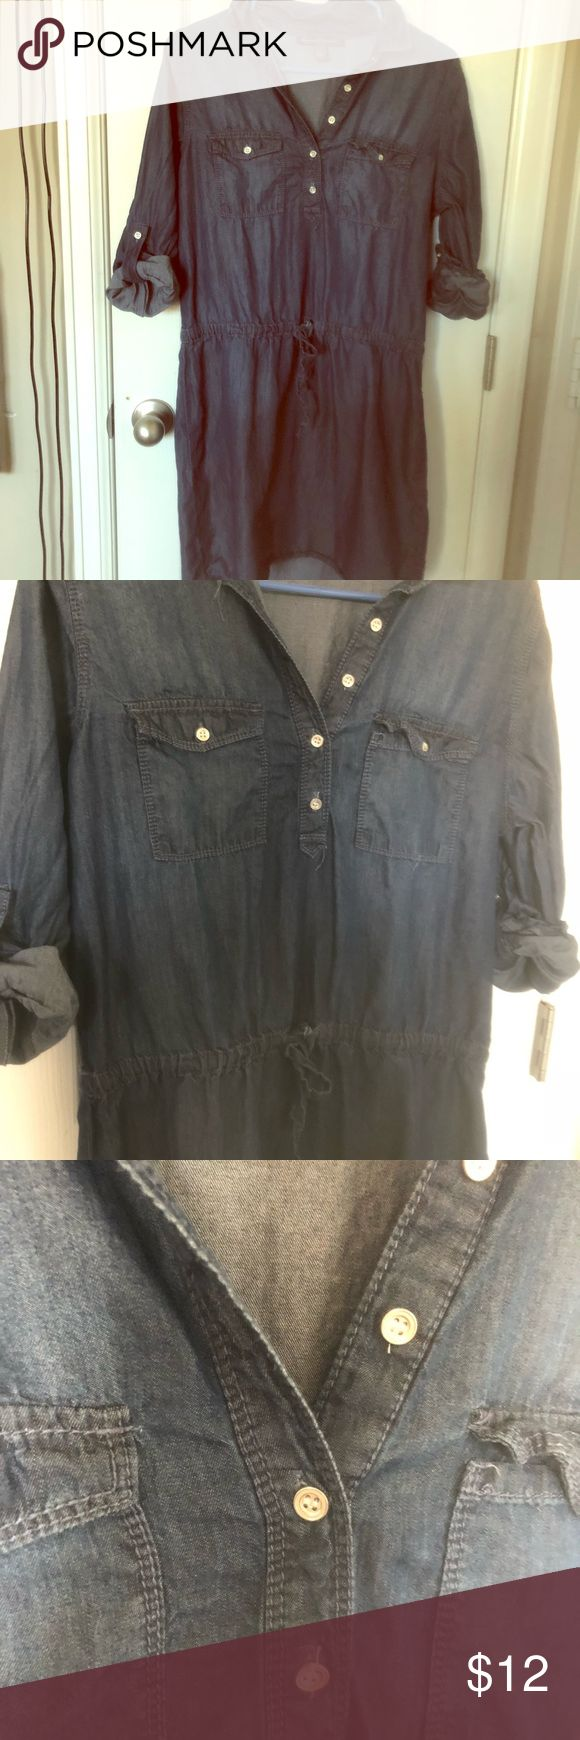 Casual denim soft dress Casual dress great with leggings! Drawstring waist to give you an hourglass figure Gloria Vanderbilt Dresses Mini